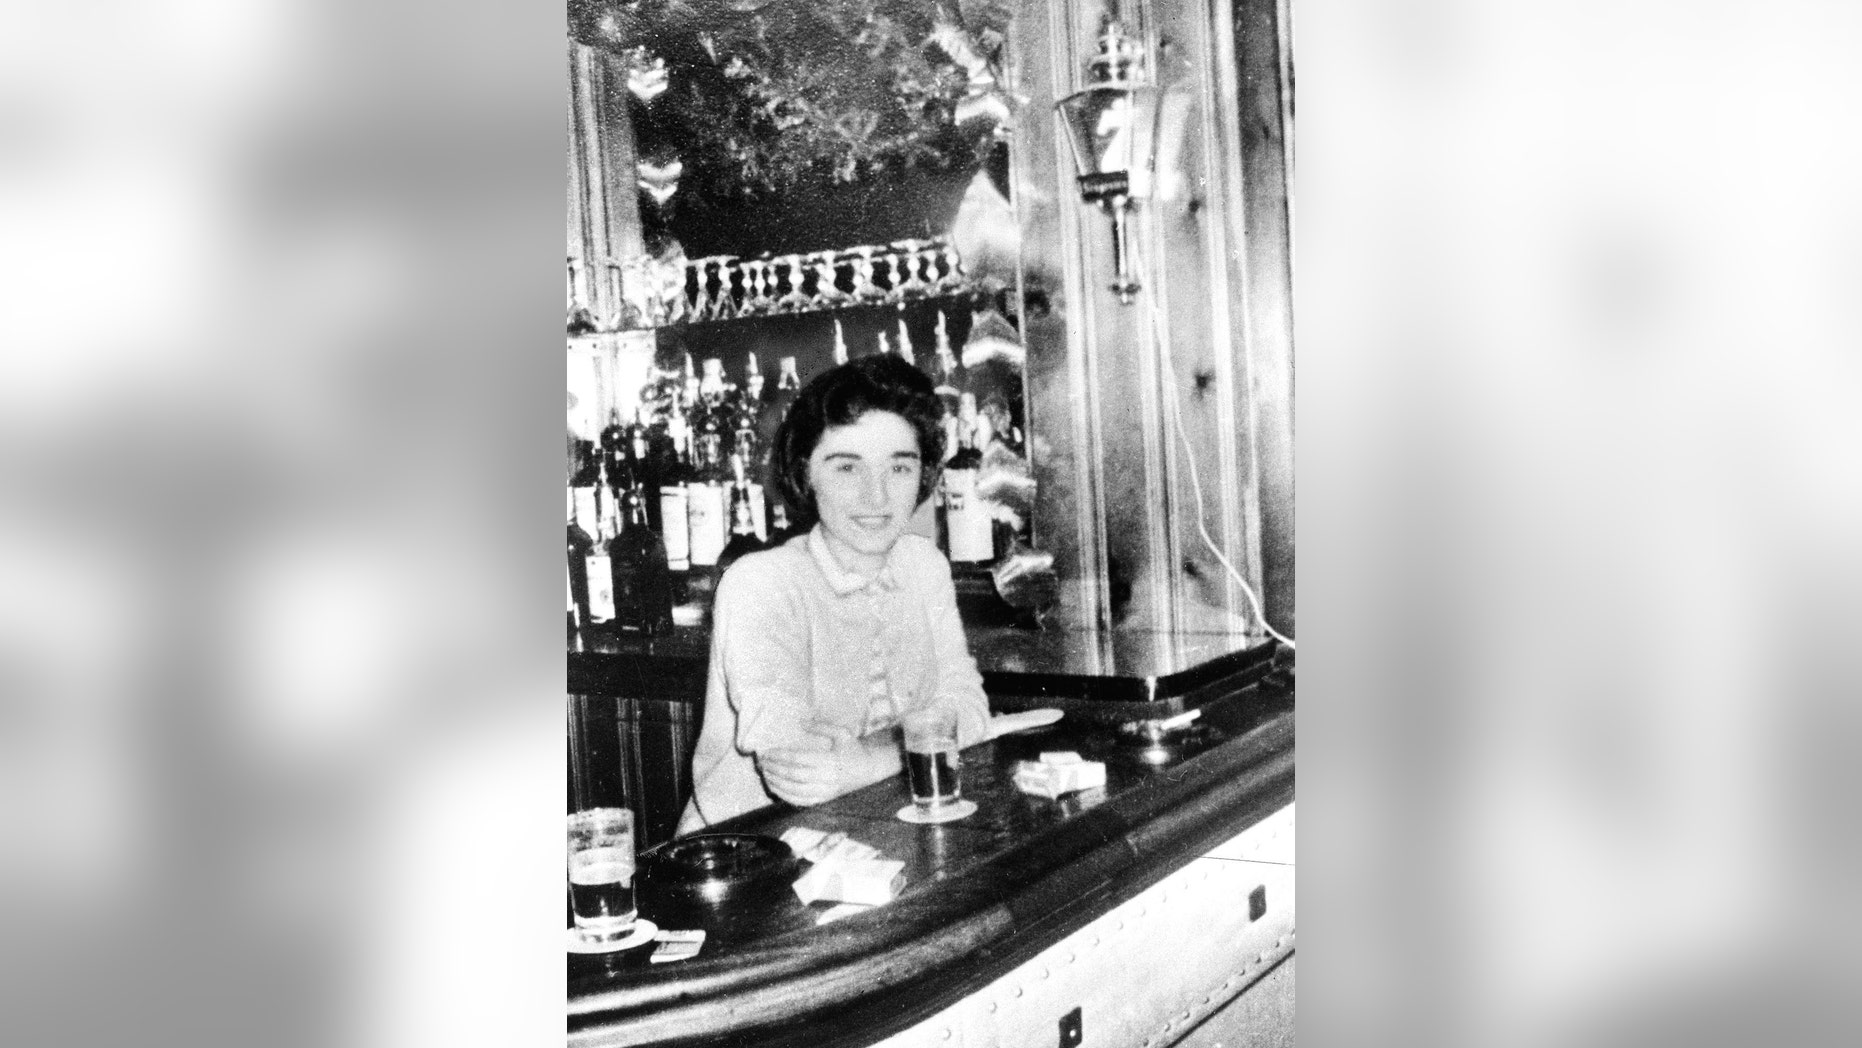 """FILE- In this undated file photo, Catherine """"Kitty"""" Genovese is shown. Genovese, a bar manager, was stabbed to death in March 1964 as she returned home to the Kew Gardens section of Queens, New York at 3:20 a.m. On Friday, Nov. 15, 2013, Genovese's killer, Winston Mosley, was denied parole for the 16th time by New York State Corrections officials. (AP Photo/New York Daily News, File) NO SALES MAGS OUT"""